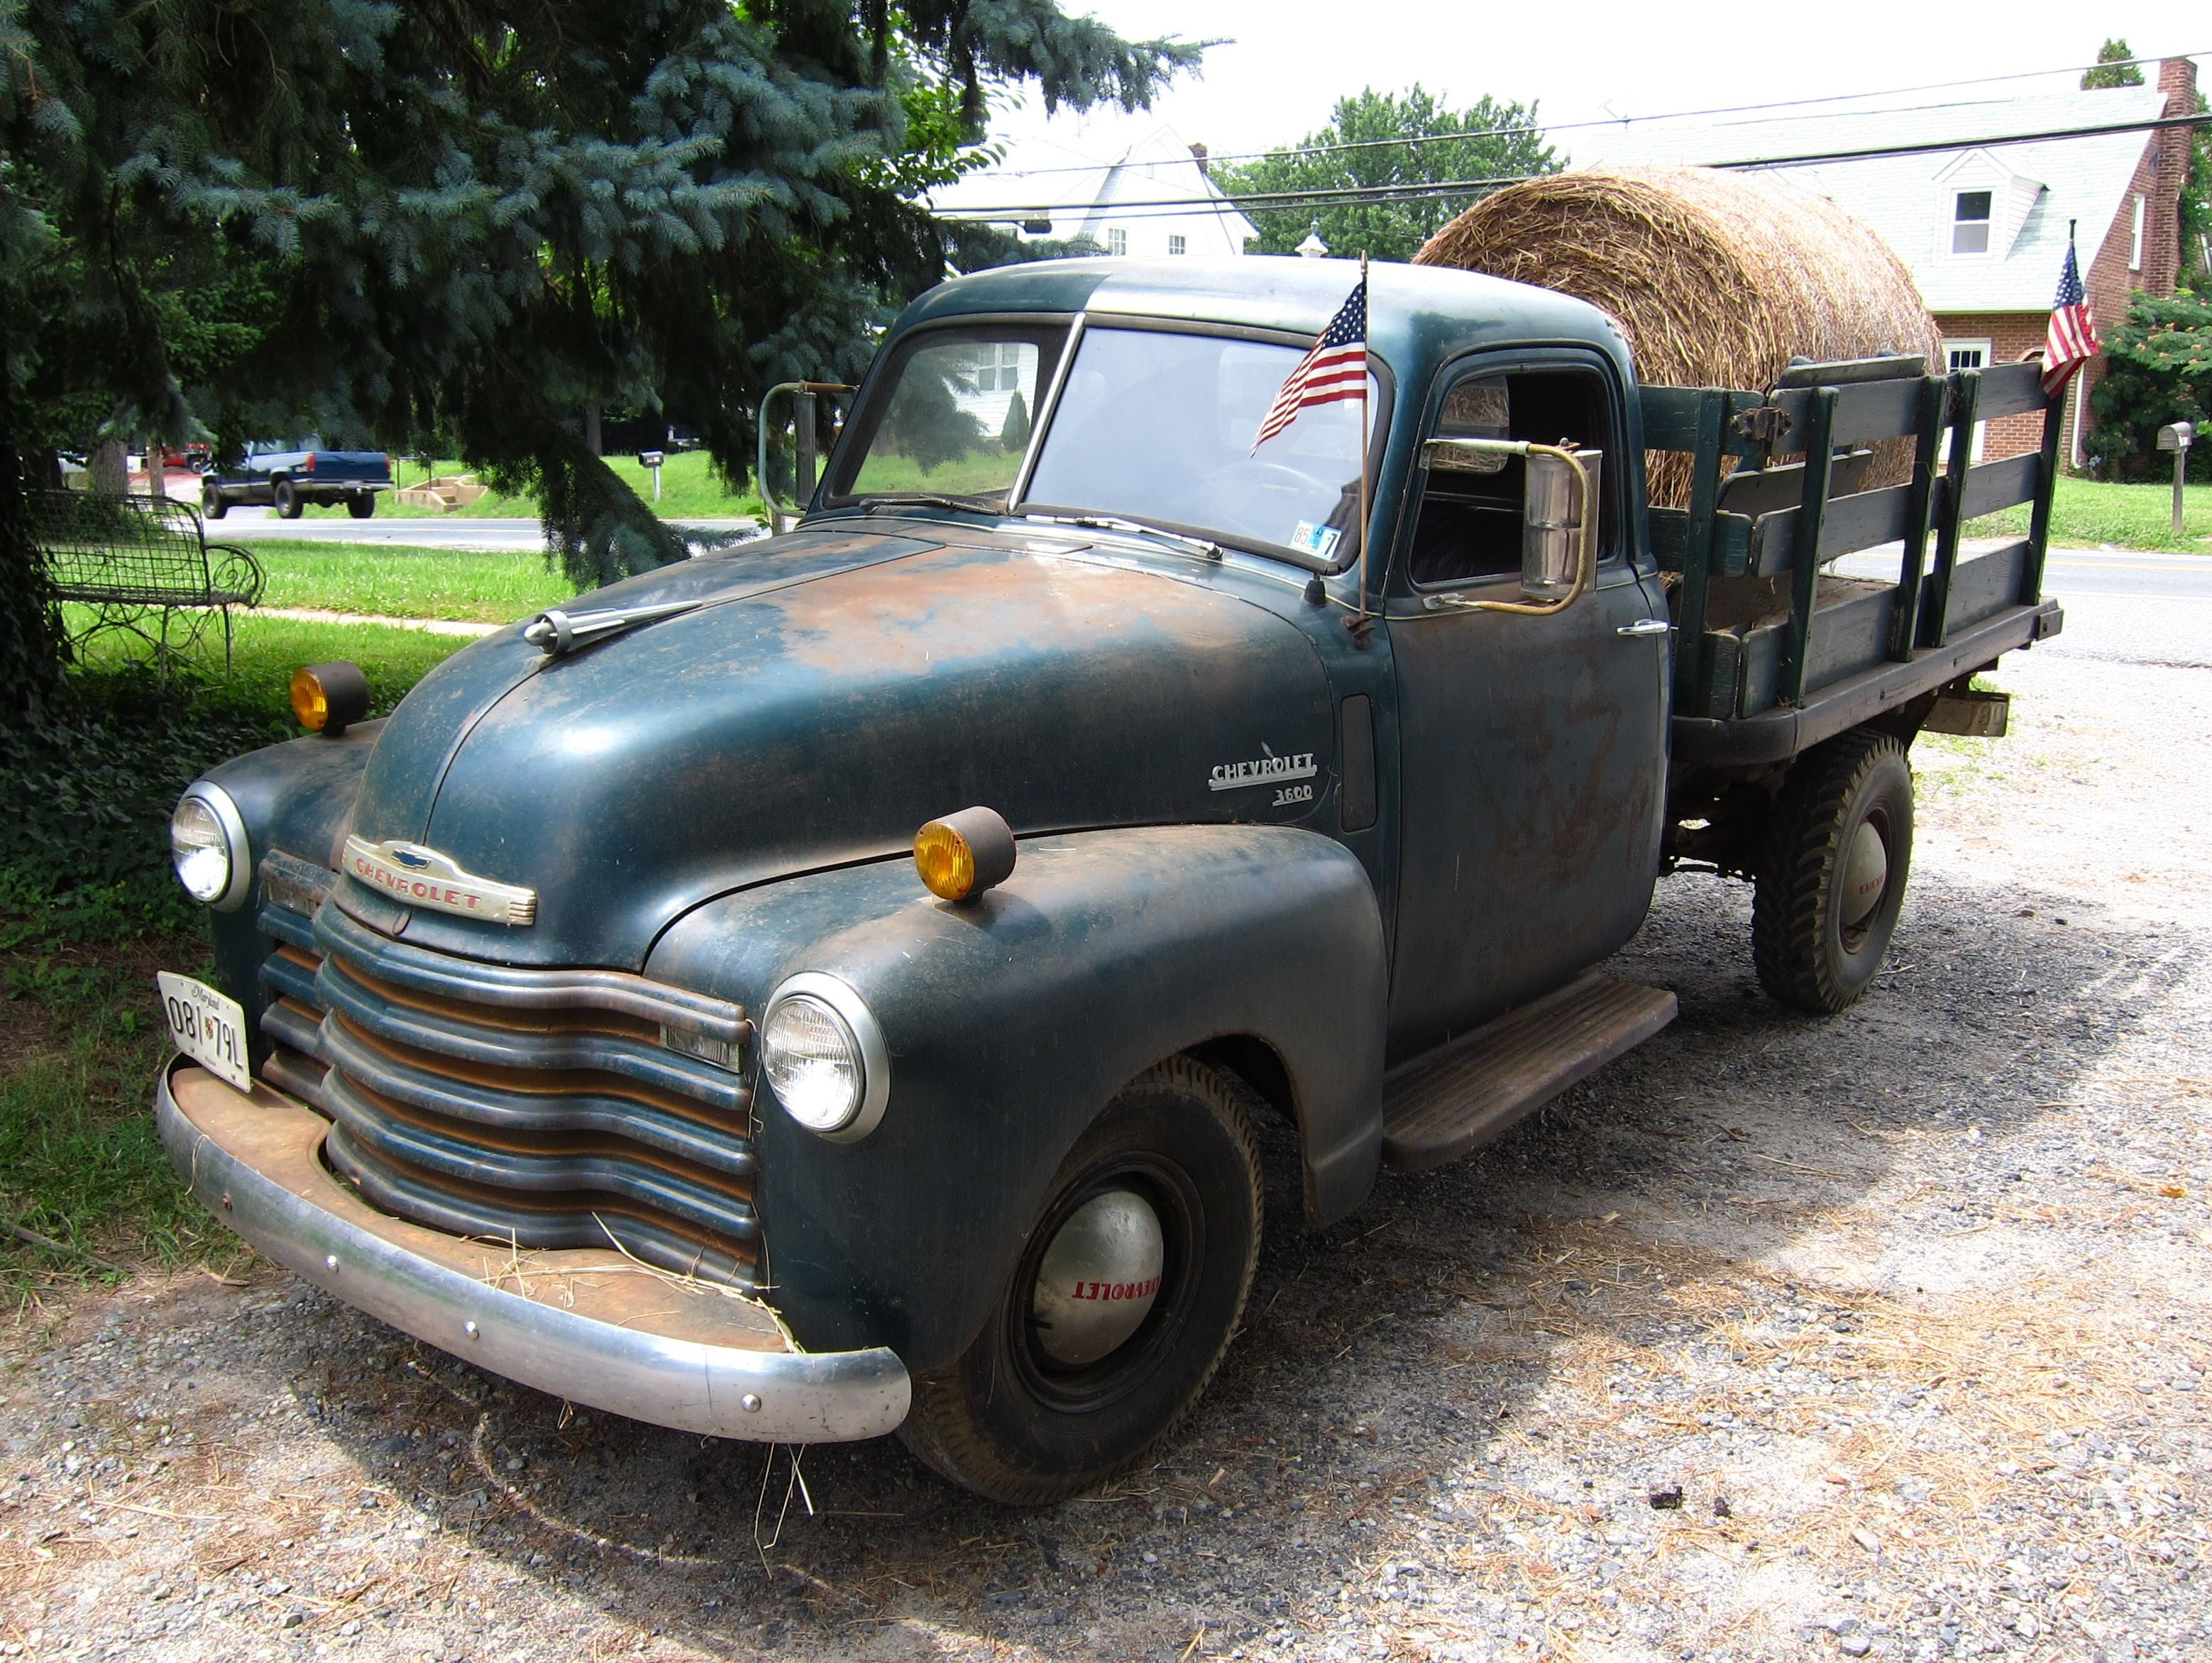 beautiful old chevy with stock racks, running boards, and